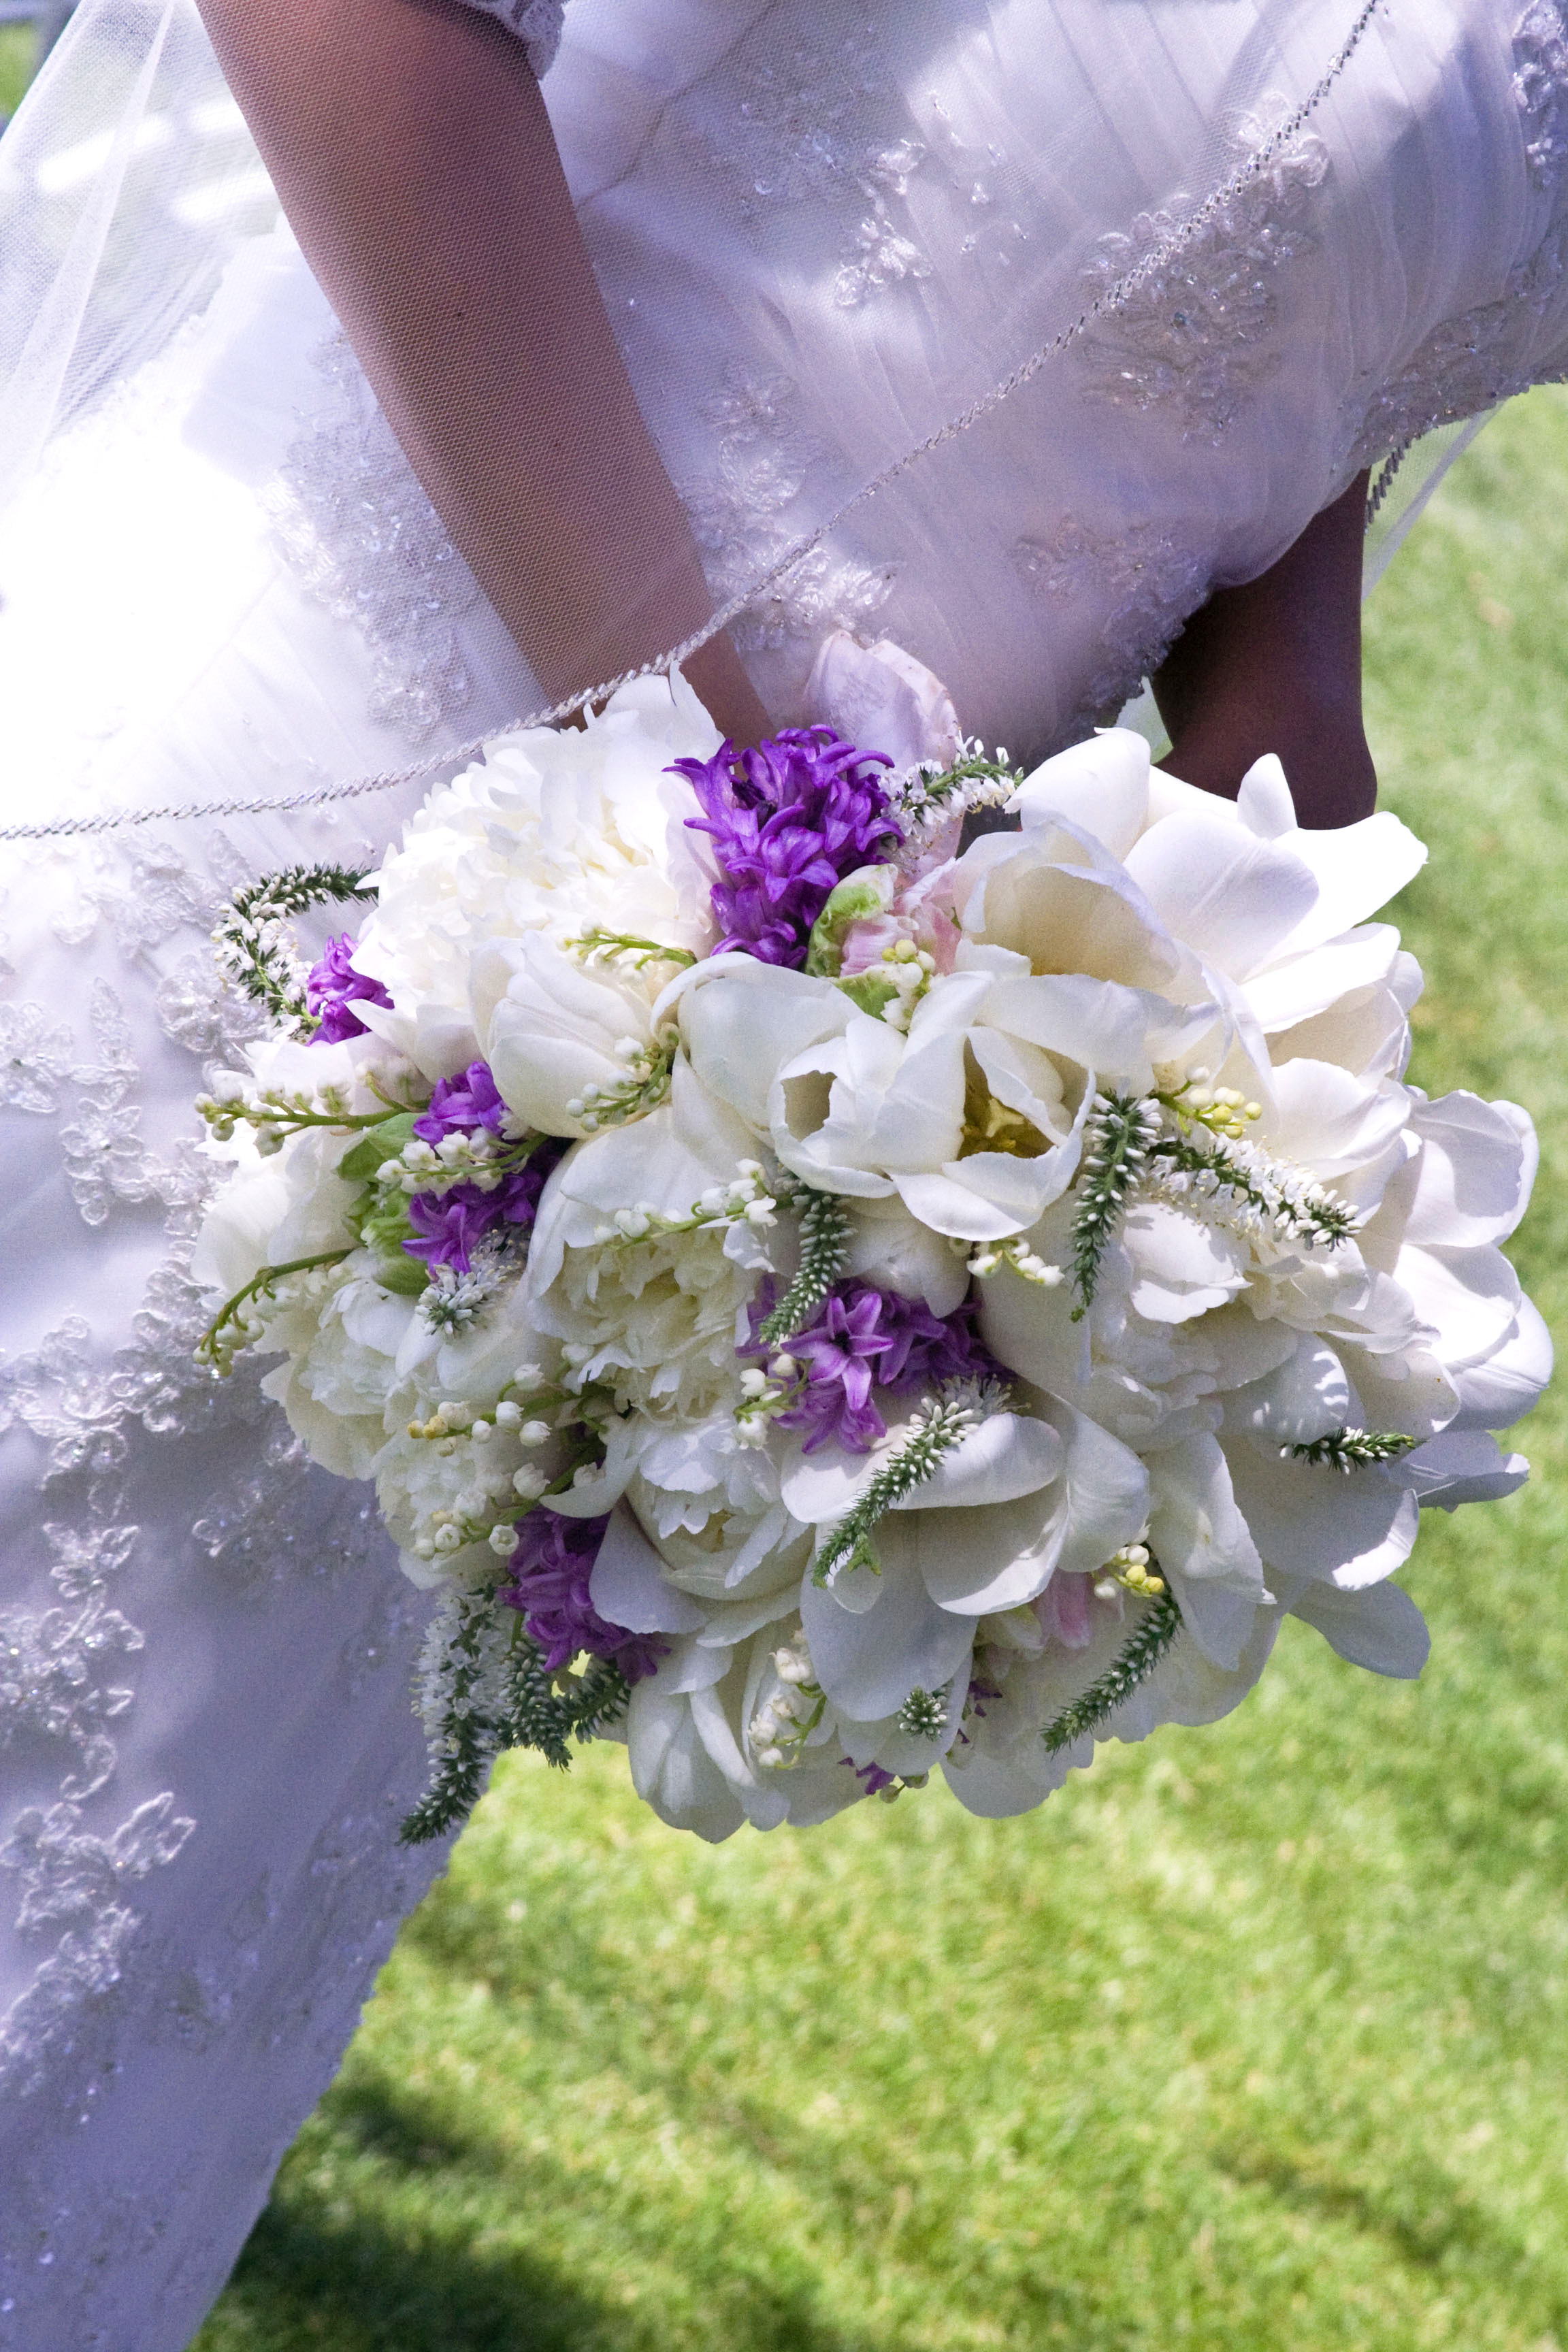 Ceremony, Inspiration, Reception, Flowers & Decor, white, purple, Ceremony Flowers, Bride Bouquets, Flowers, Bouquet, Of, Bridal, Tulips, Board, The, Lily, French, Valley, Hyacinth, Veronica, Simply that flowers, Poenies